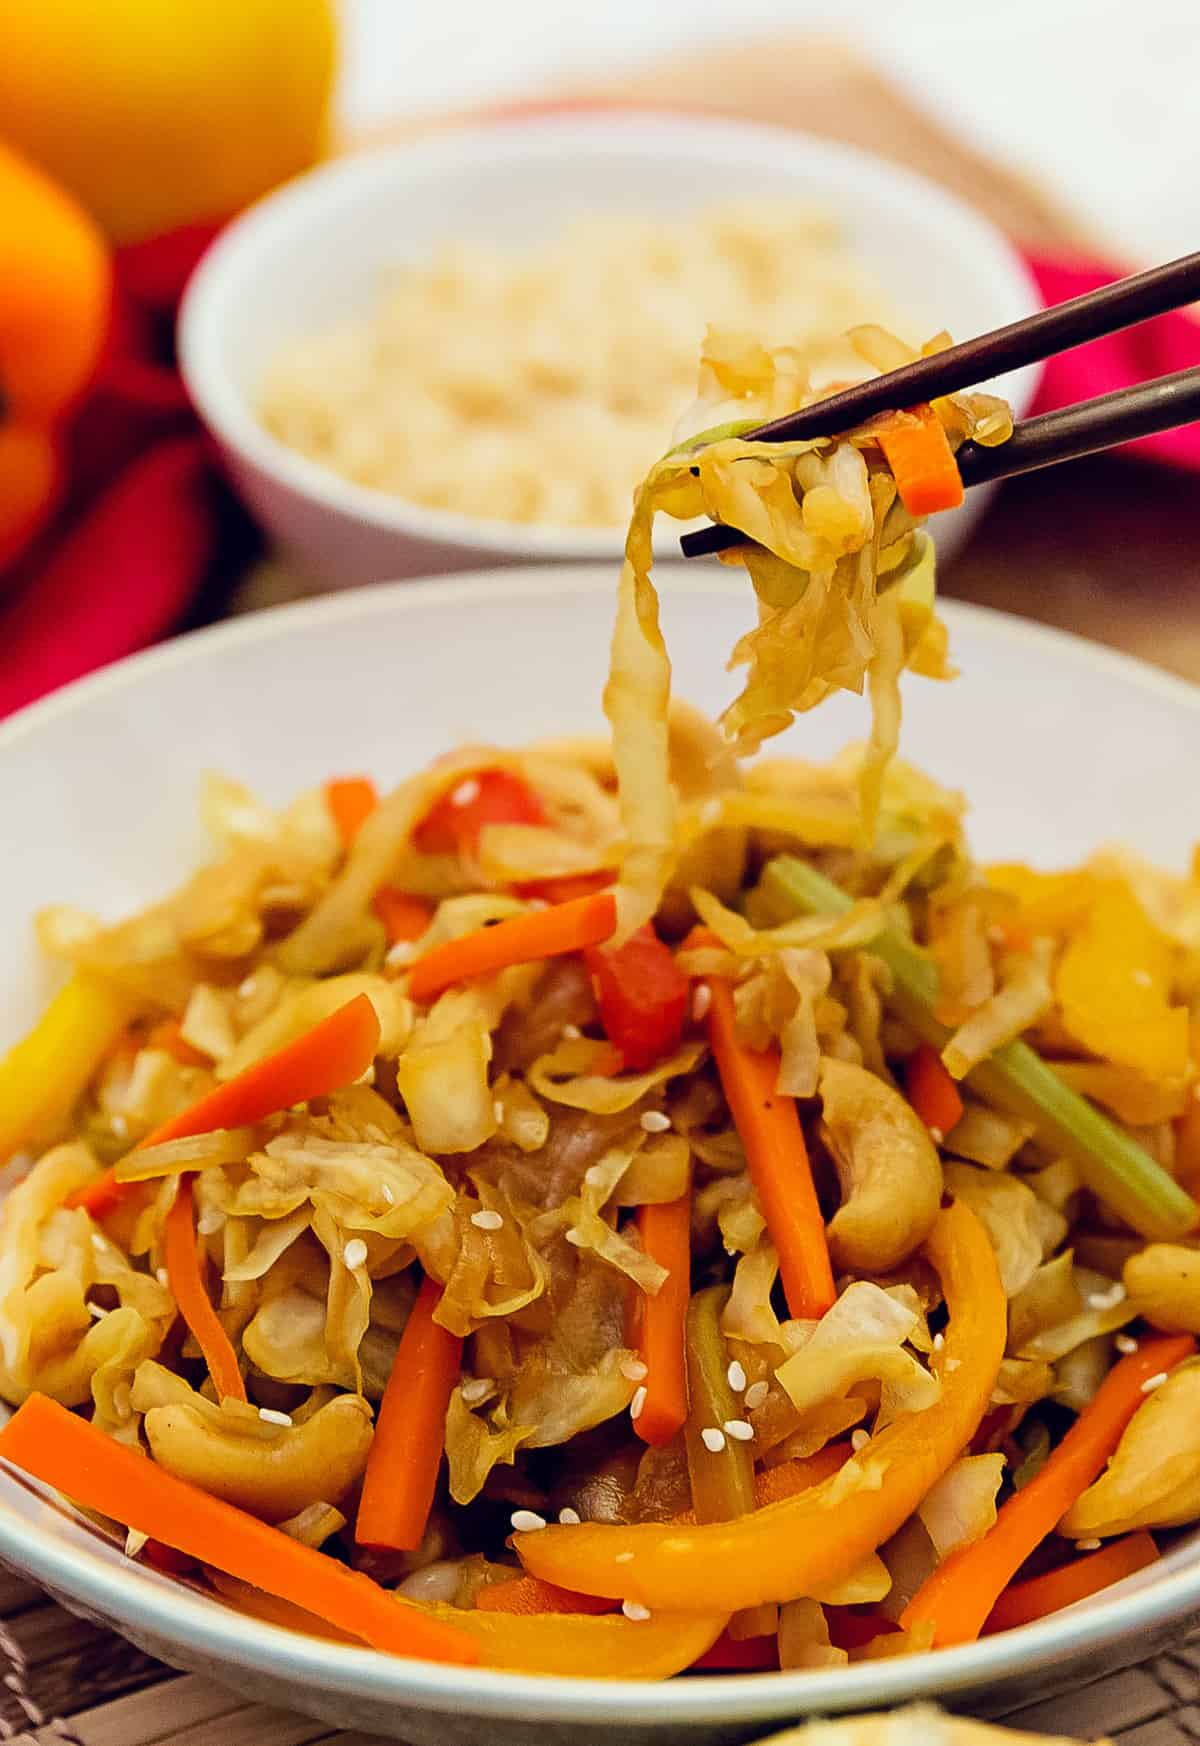 Cashew cabbage stir fry monkey and me kitchen adventures the best cashew cabbage stir fry whole food plant based healthy recipes recipes forumfinder Images